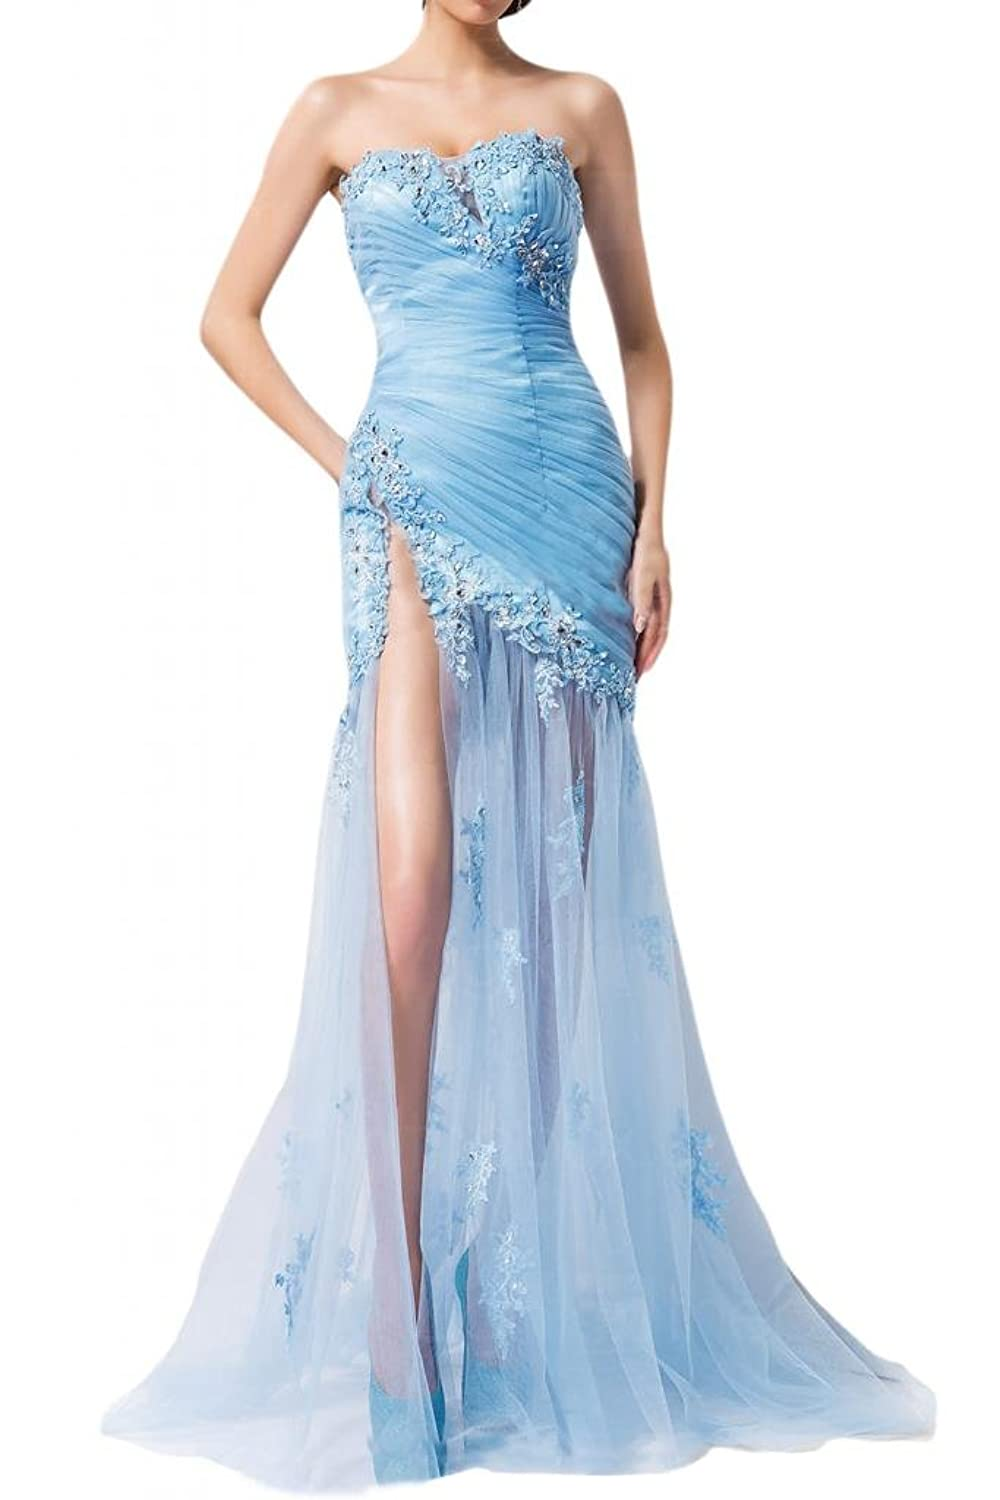 Sunvary 2014 Romantic Evening Prom Dresses Strapless Sweetheart Sheath Short Rulle Applique